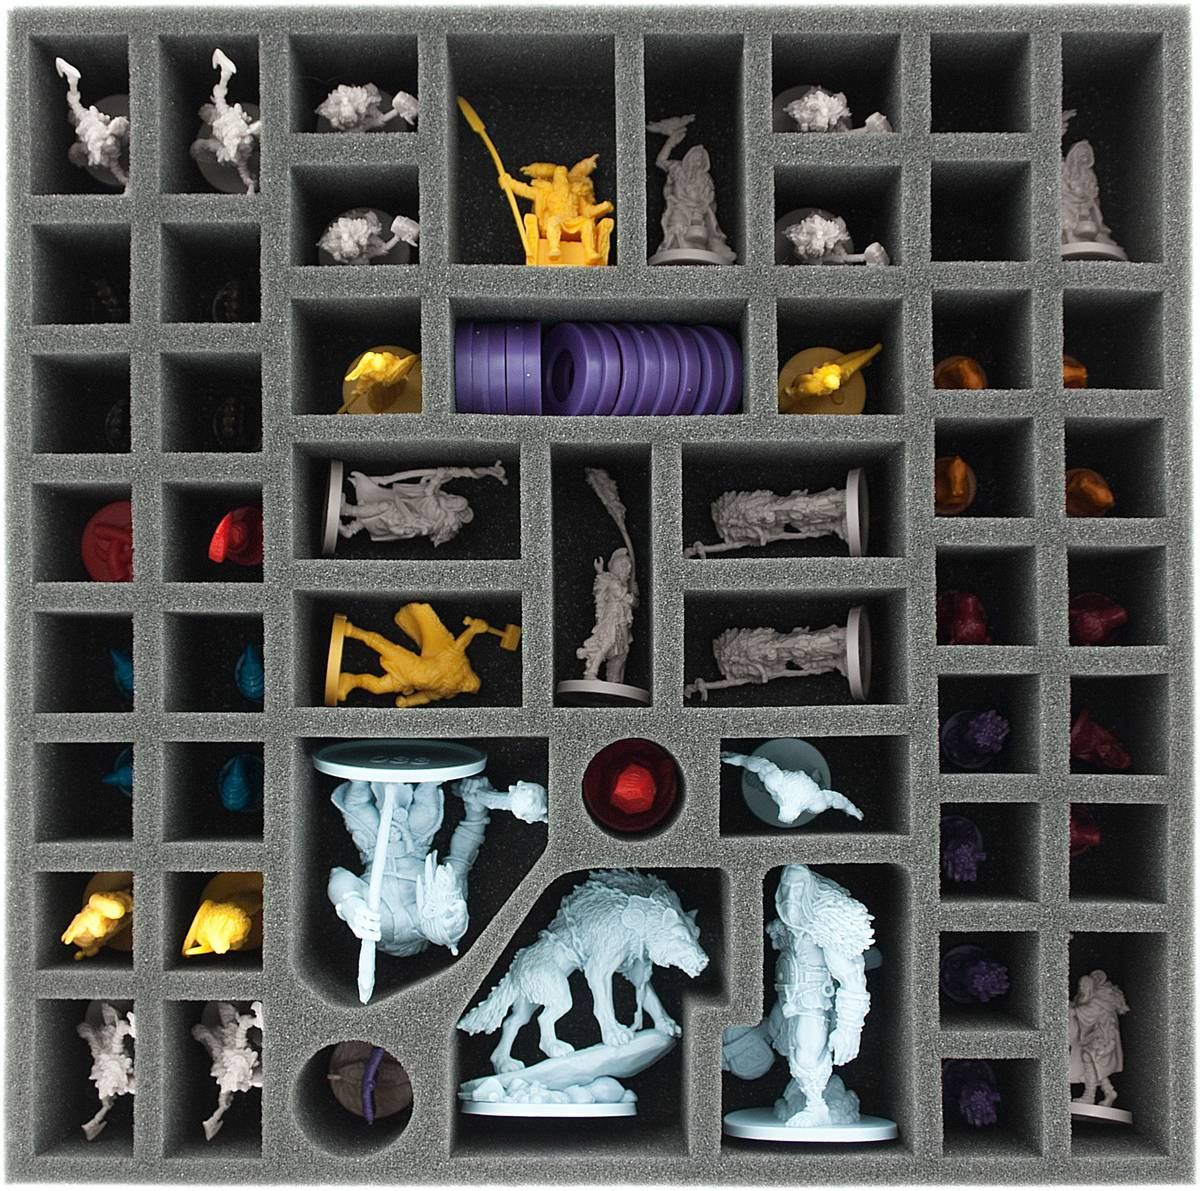 AG055BR03 55 mm foam tray for Blood Rage - Kickstarter exclusives